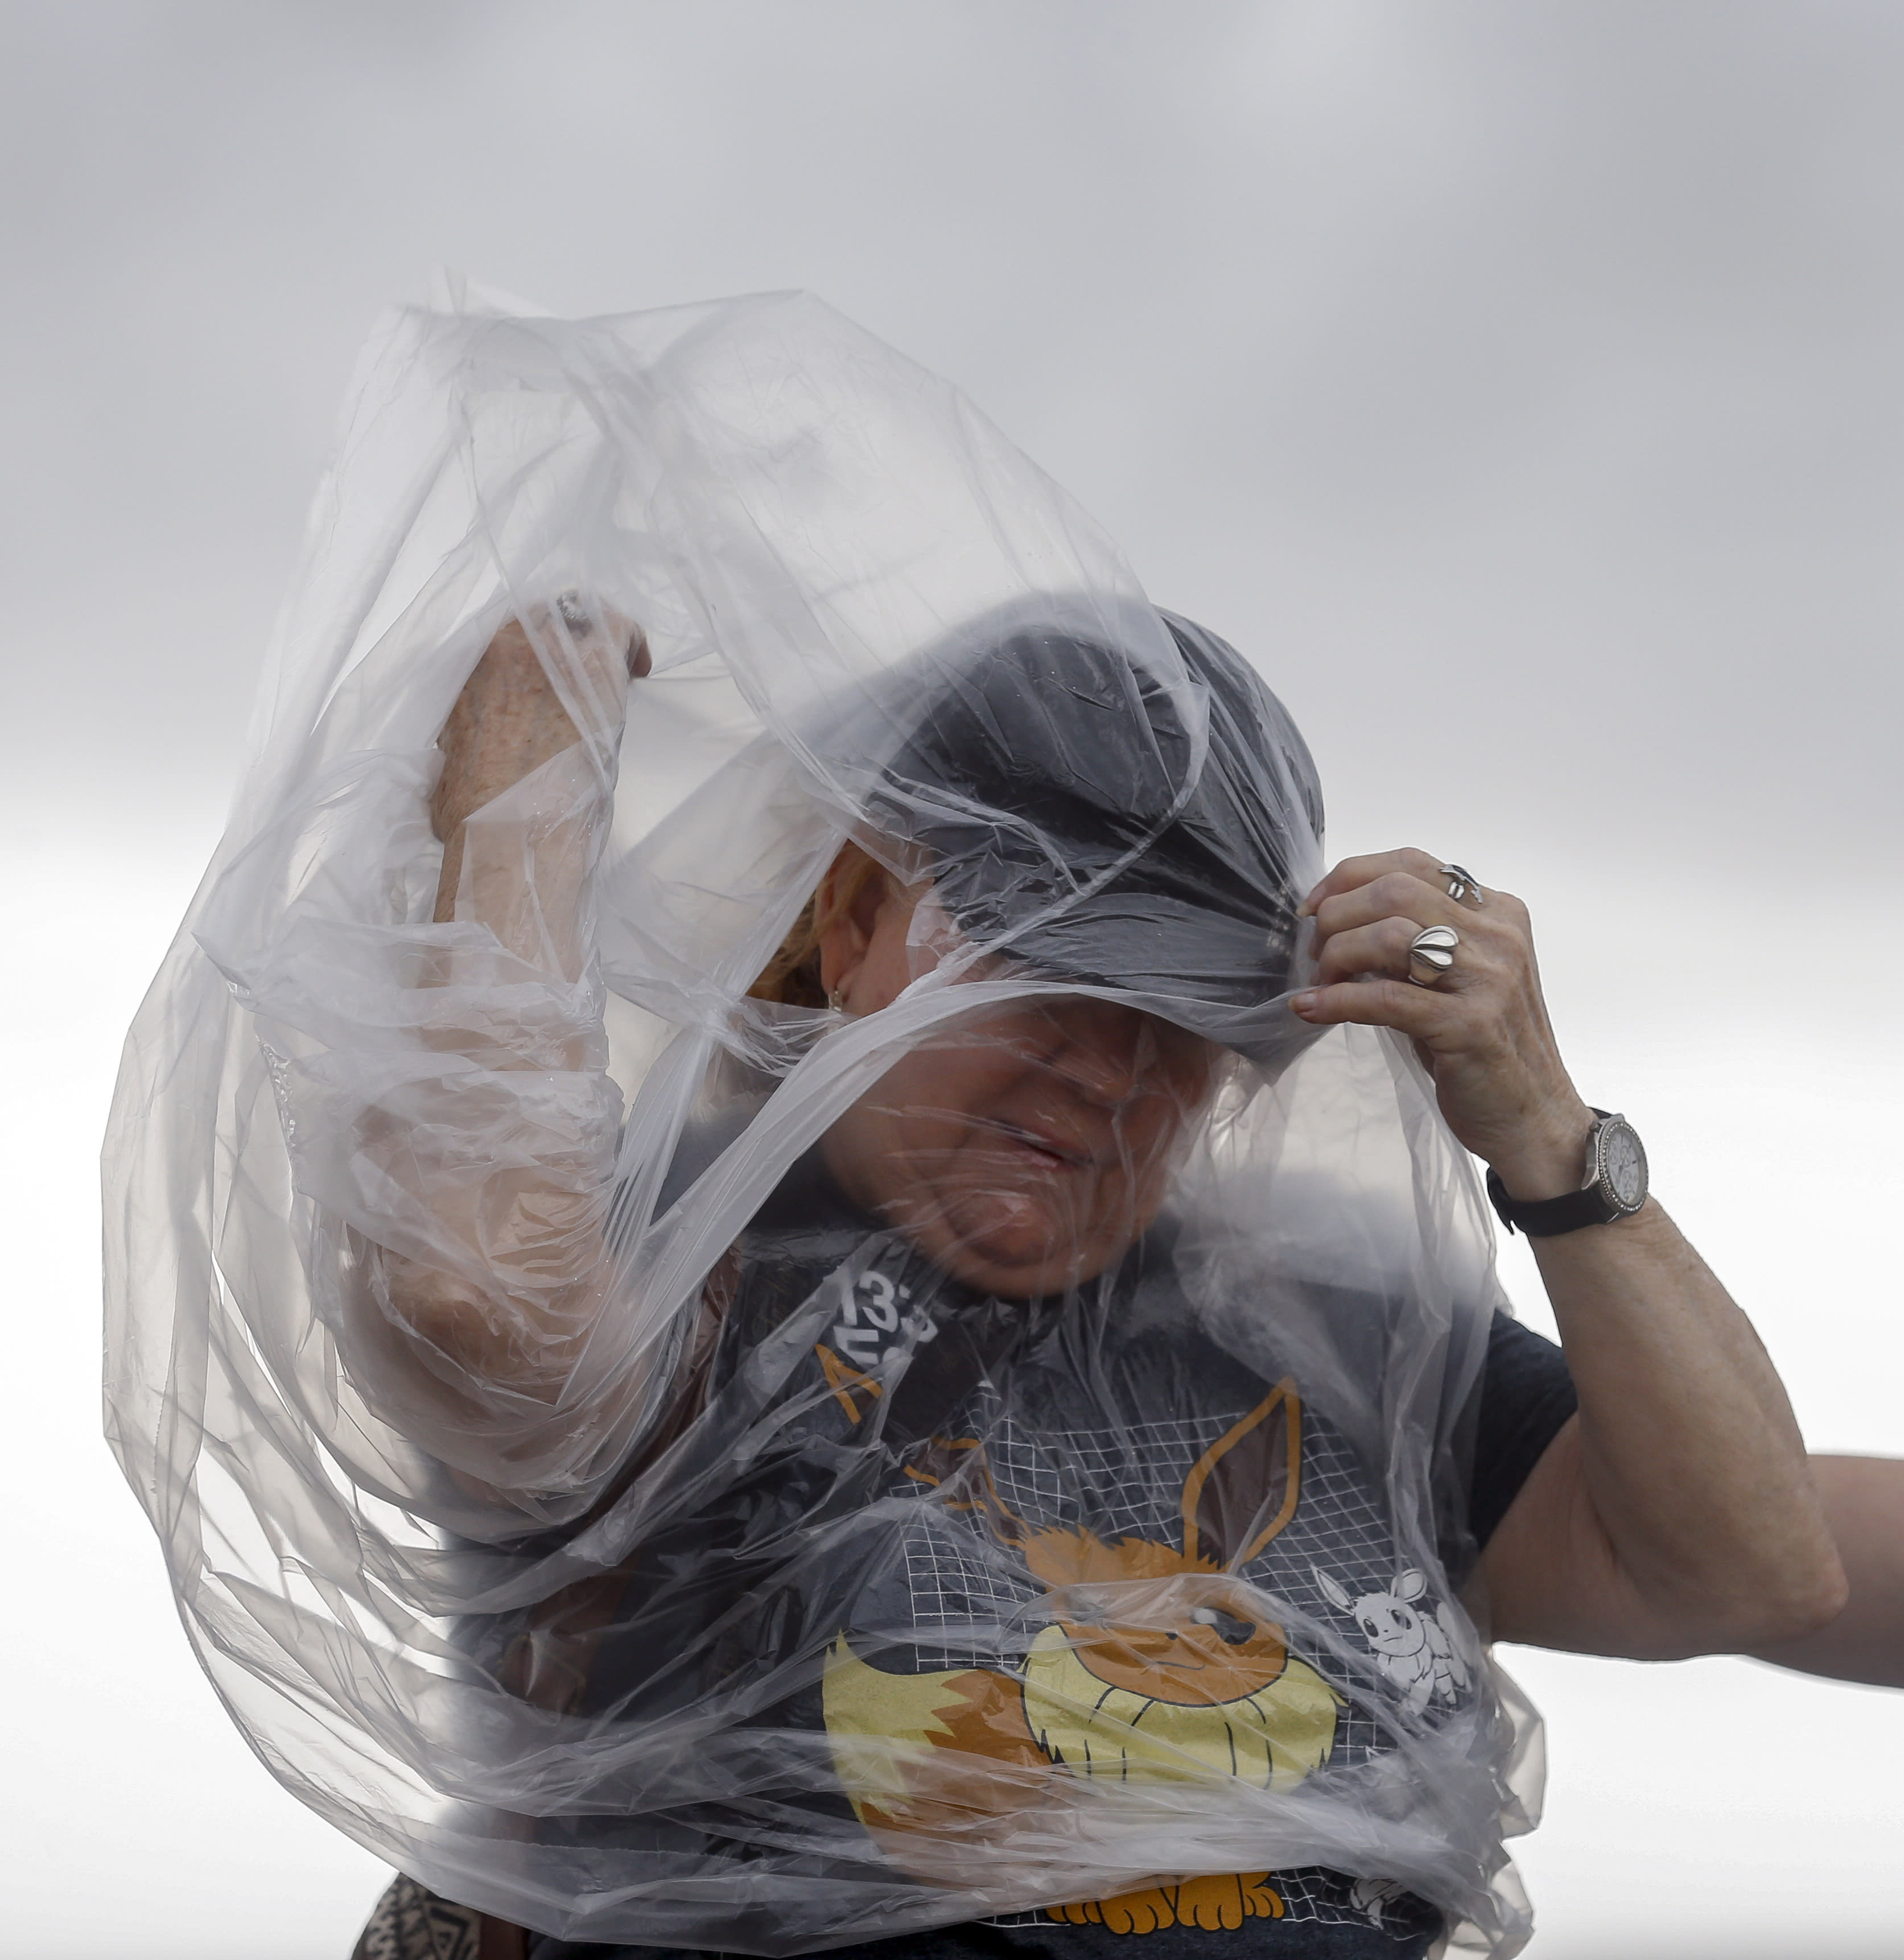 Susan Choate fights the wind to put on a poncho while taking a quick break from being part of the Pokemon Go Fest, which is virtual this year, along Seawall Boulevard on Saturday, July 25, 2020, in Galveston, Texas. Outer bands of Hurricane Hanna are affecting the Houston and Galveston areas. (Godofredo A. Vásquez/Houston Chronicle via AP)